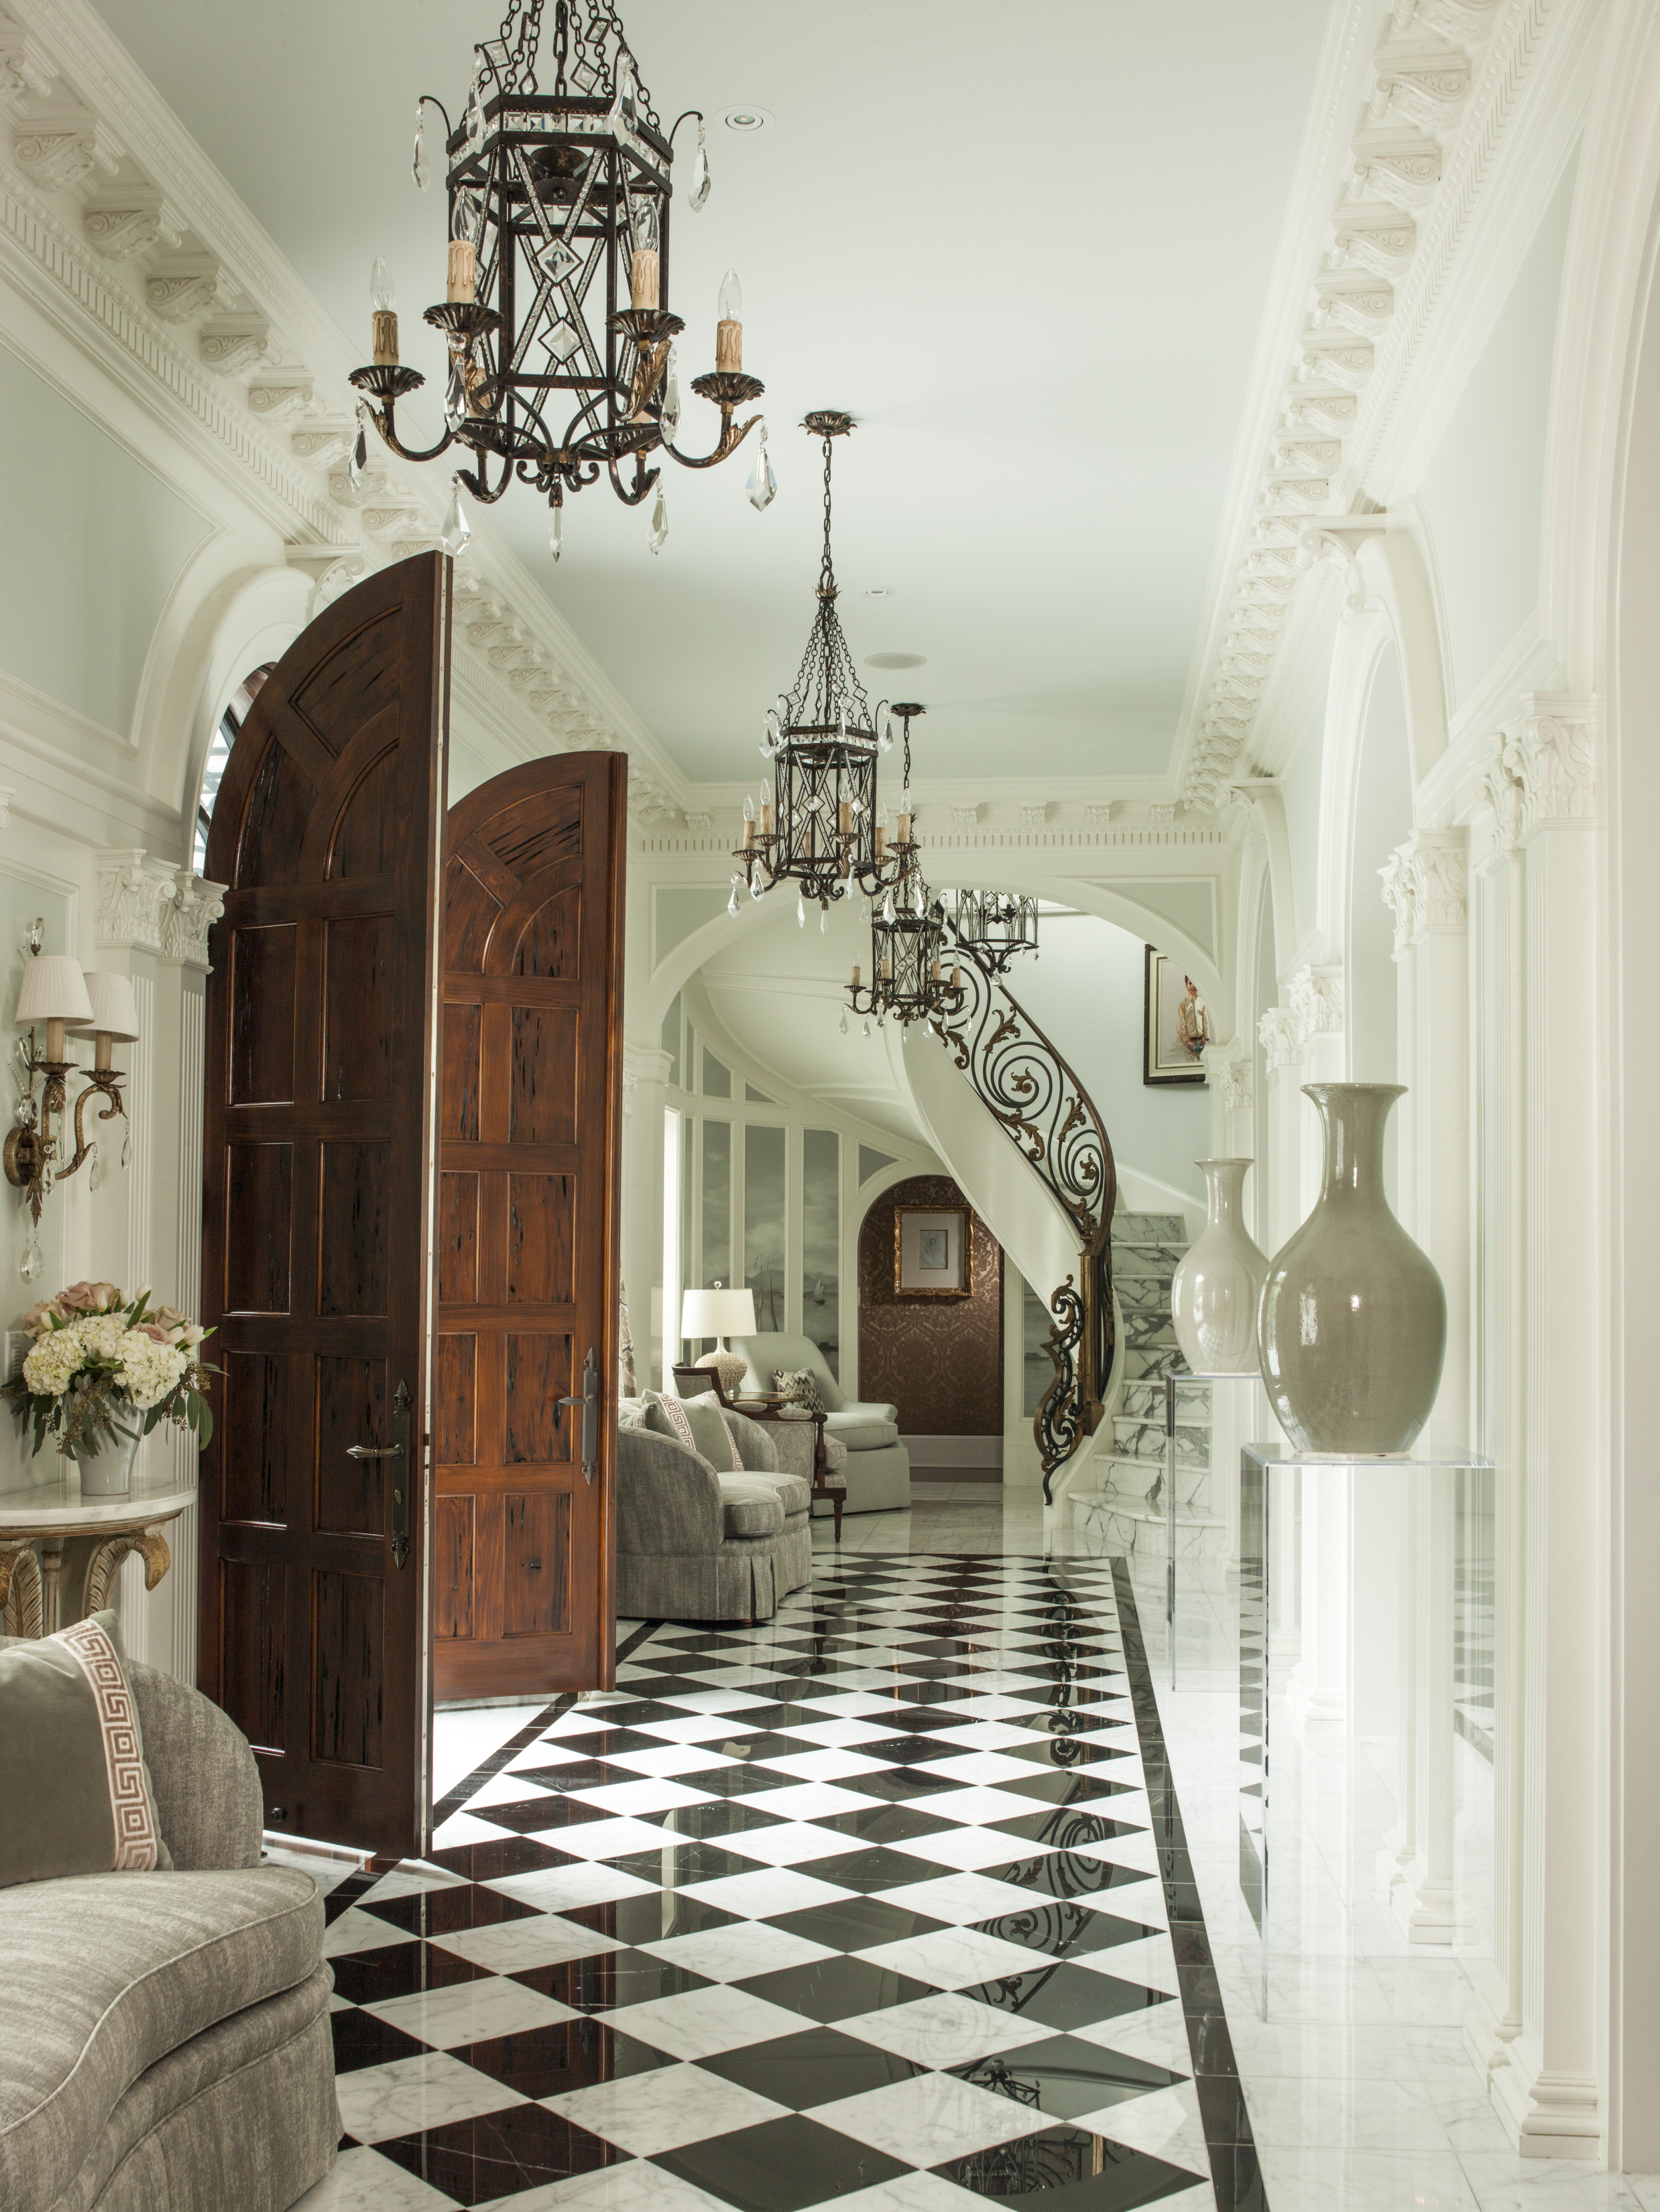 Baroque Revival: Juliana​ ​Catlin​ ​-​ ​Catlin​ ​Design